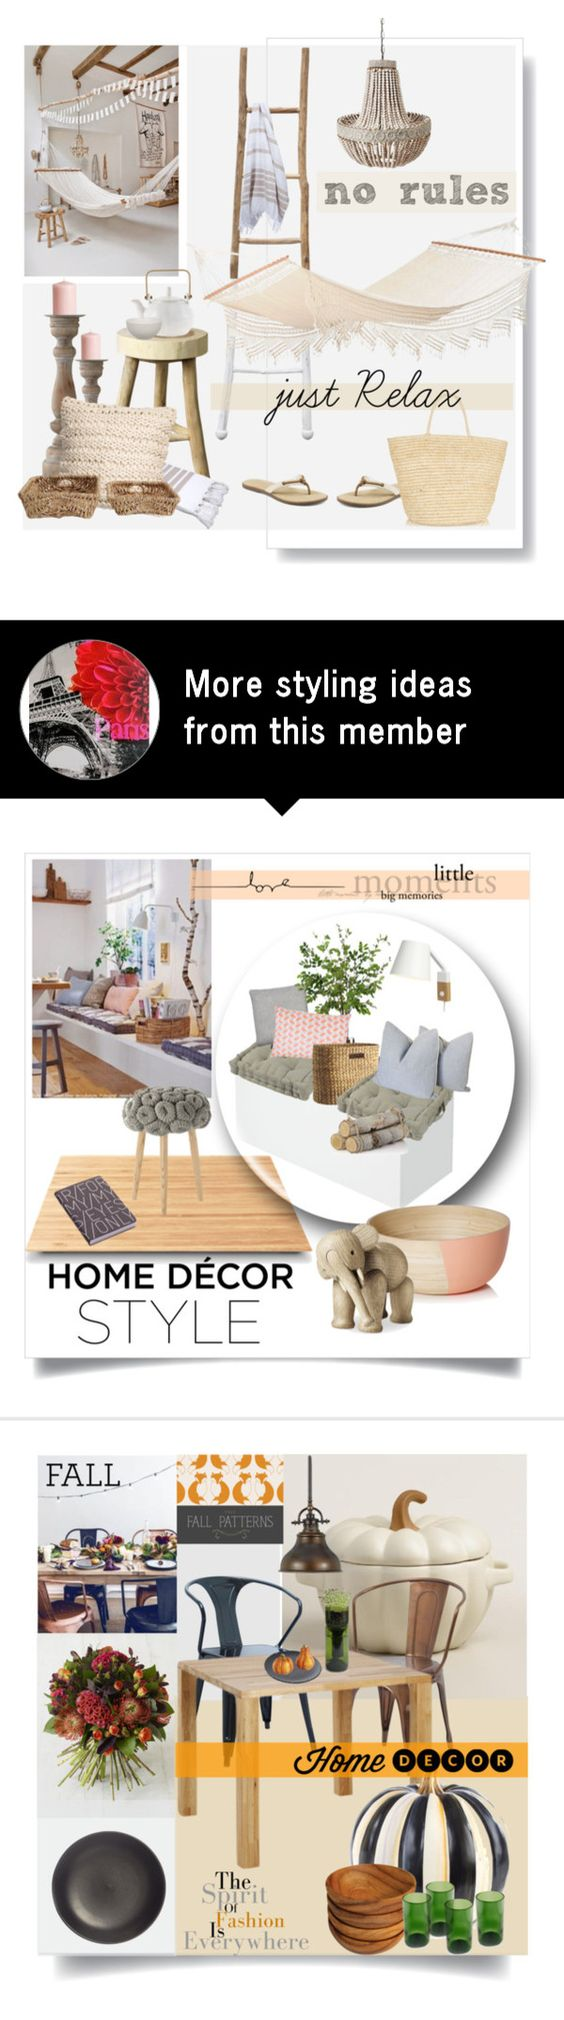 """Relax corner"" by fishetta on Polyvore featuring interior, interiors, interior design, home, home decor, interior decorating, Dot & Bo, Amazonas, Jamie Young and Bloomingville"